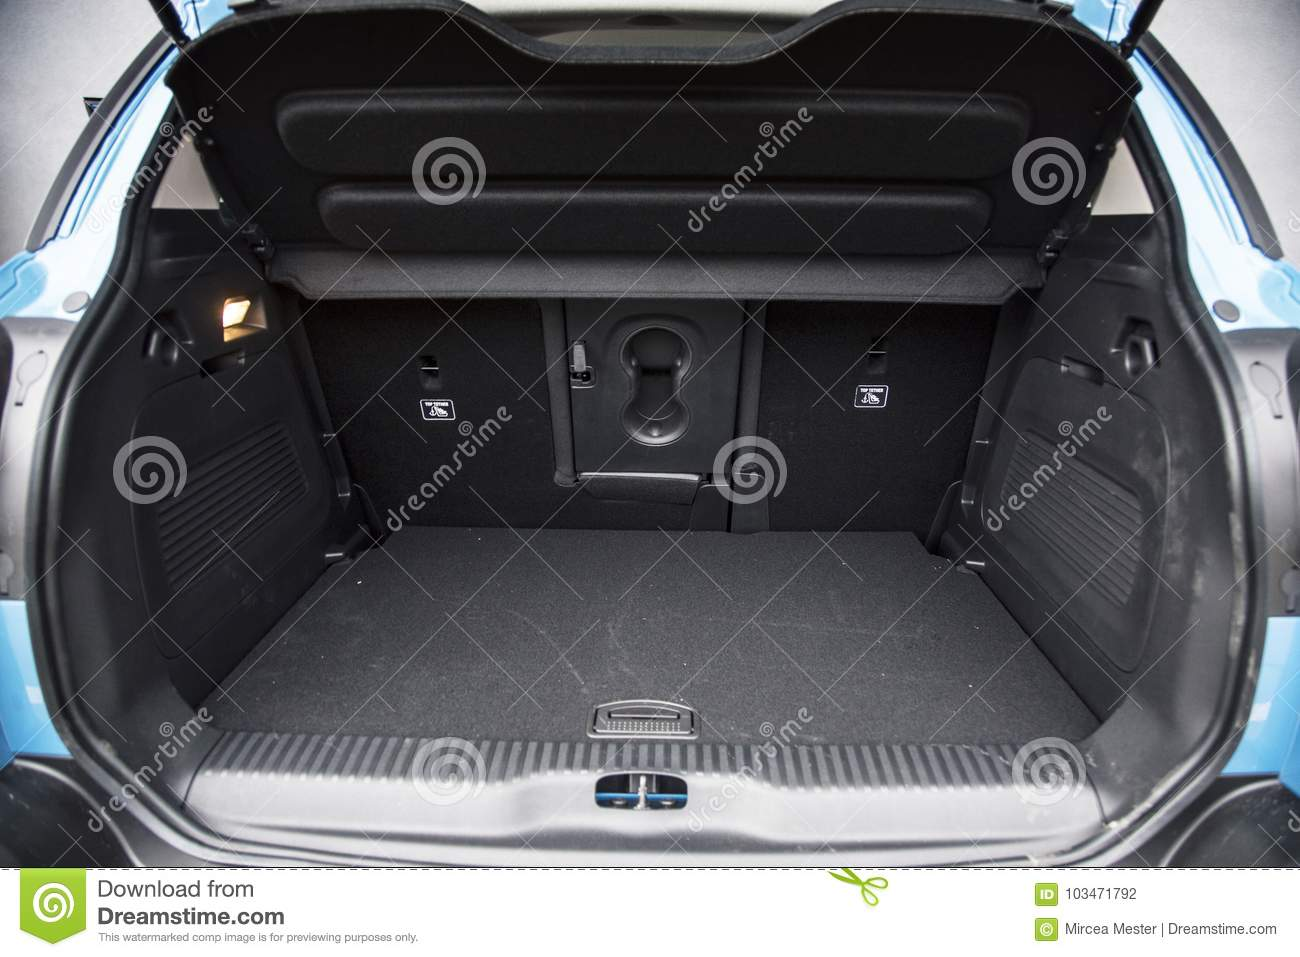 Empty Car Boot With Luggage Space Available Stock Photo - Image of drive,  compartment: 103471792